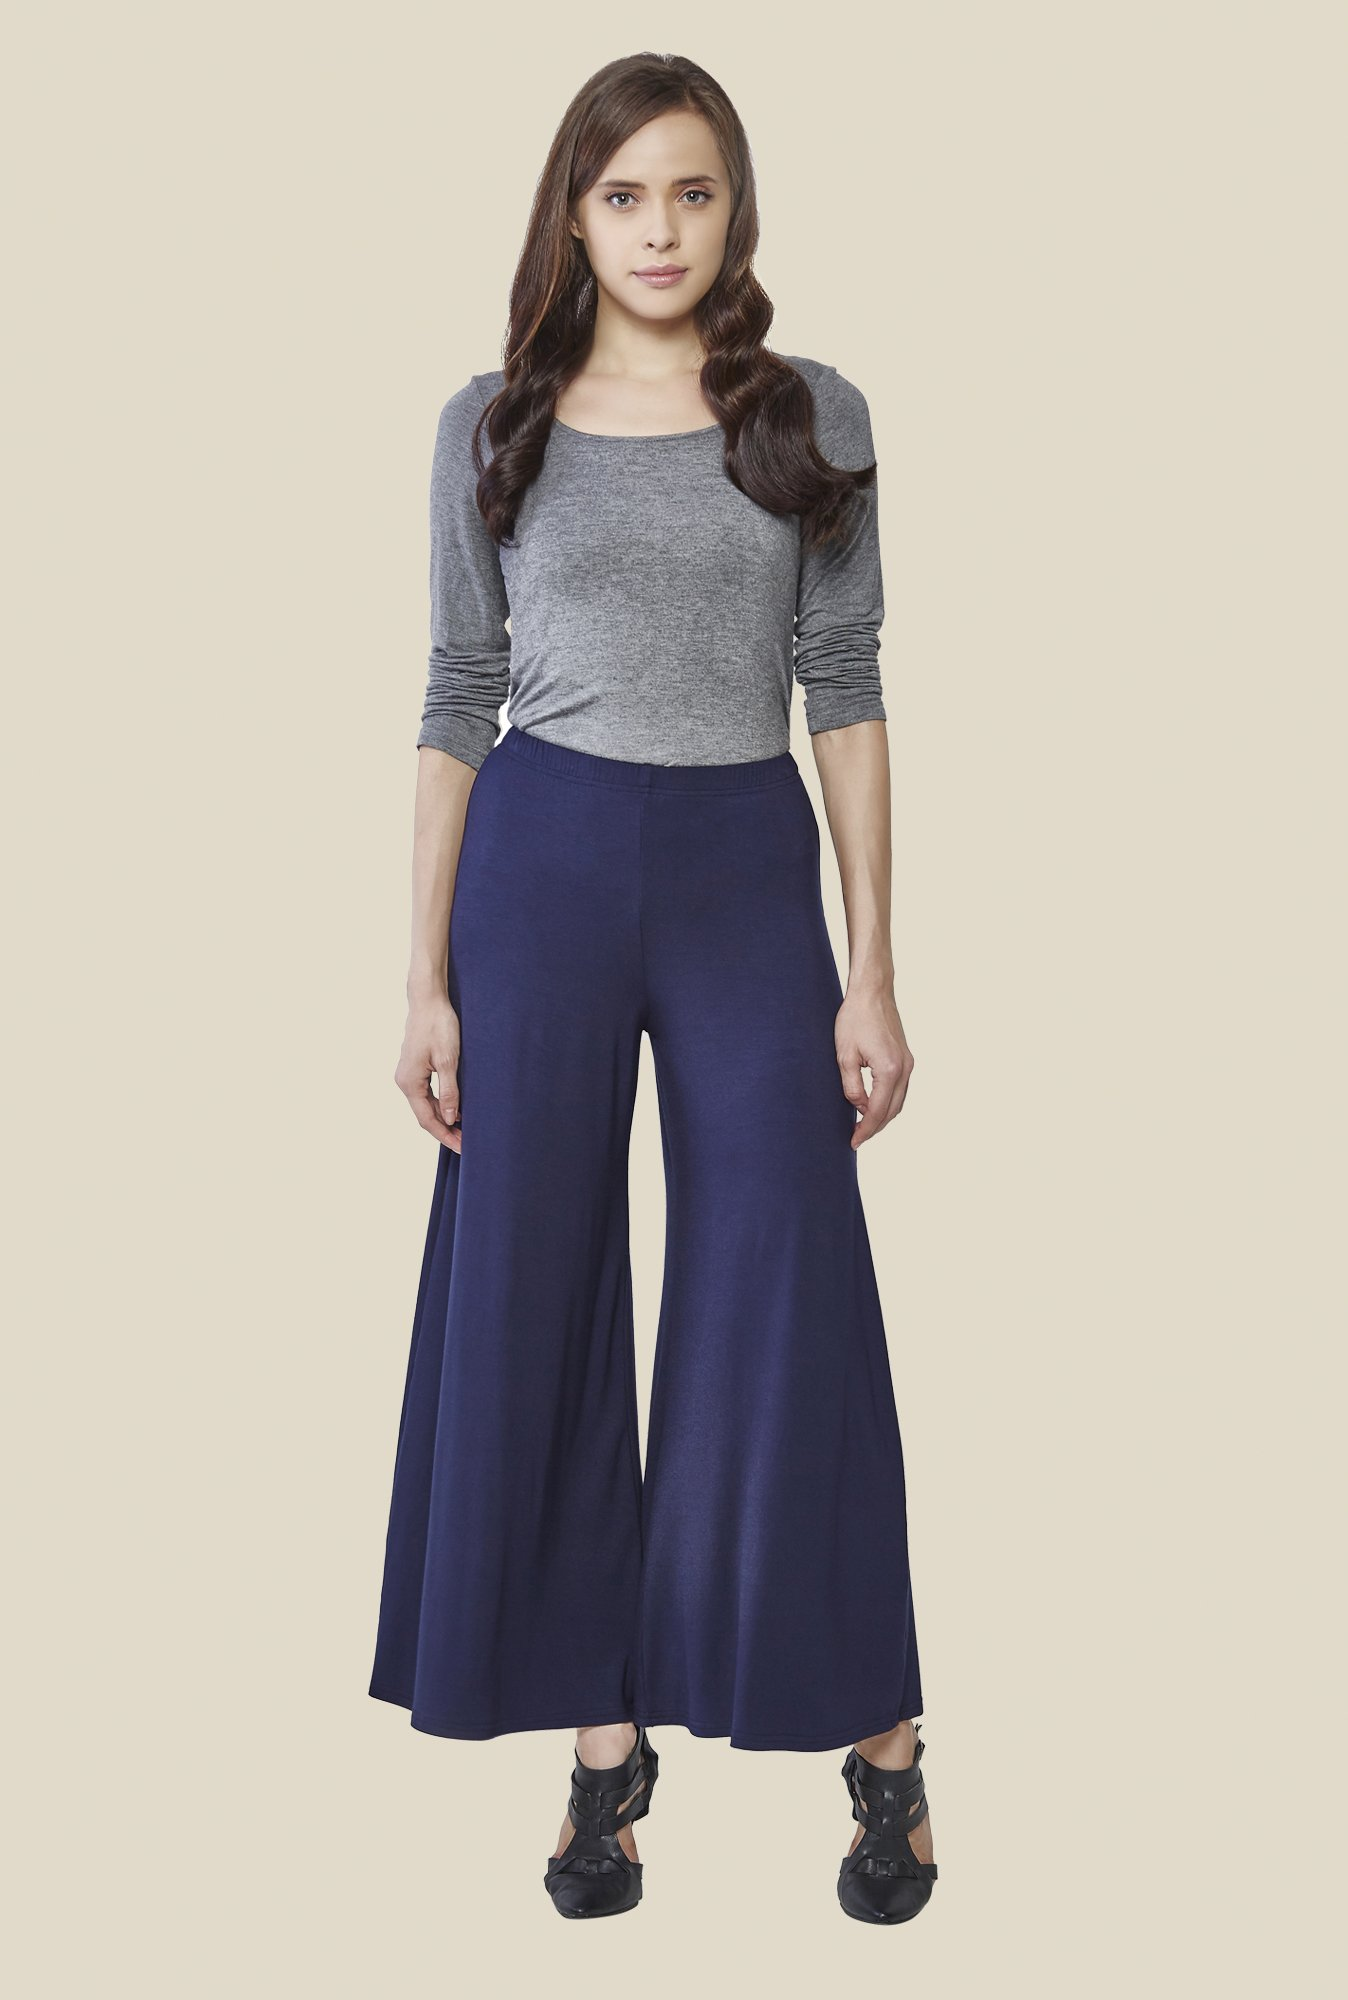 AND Navy Solid Relaxed Fit Palazzos